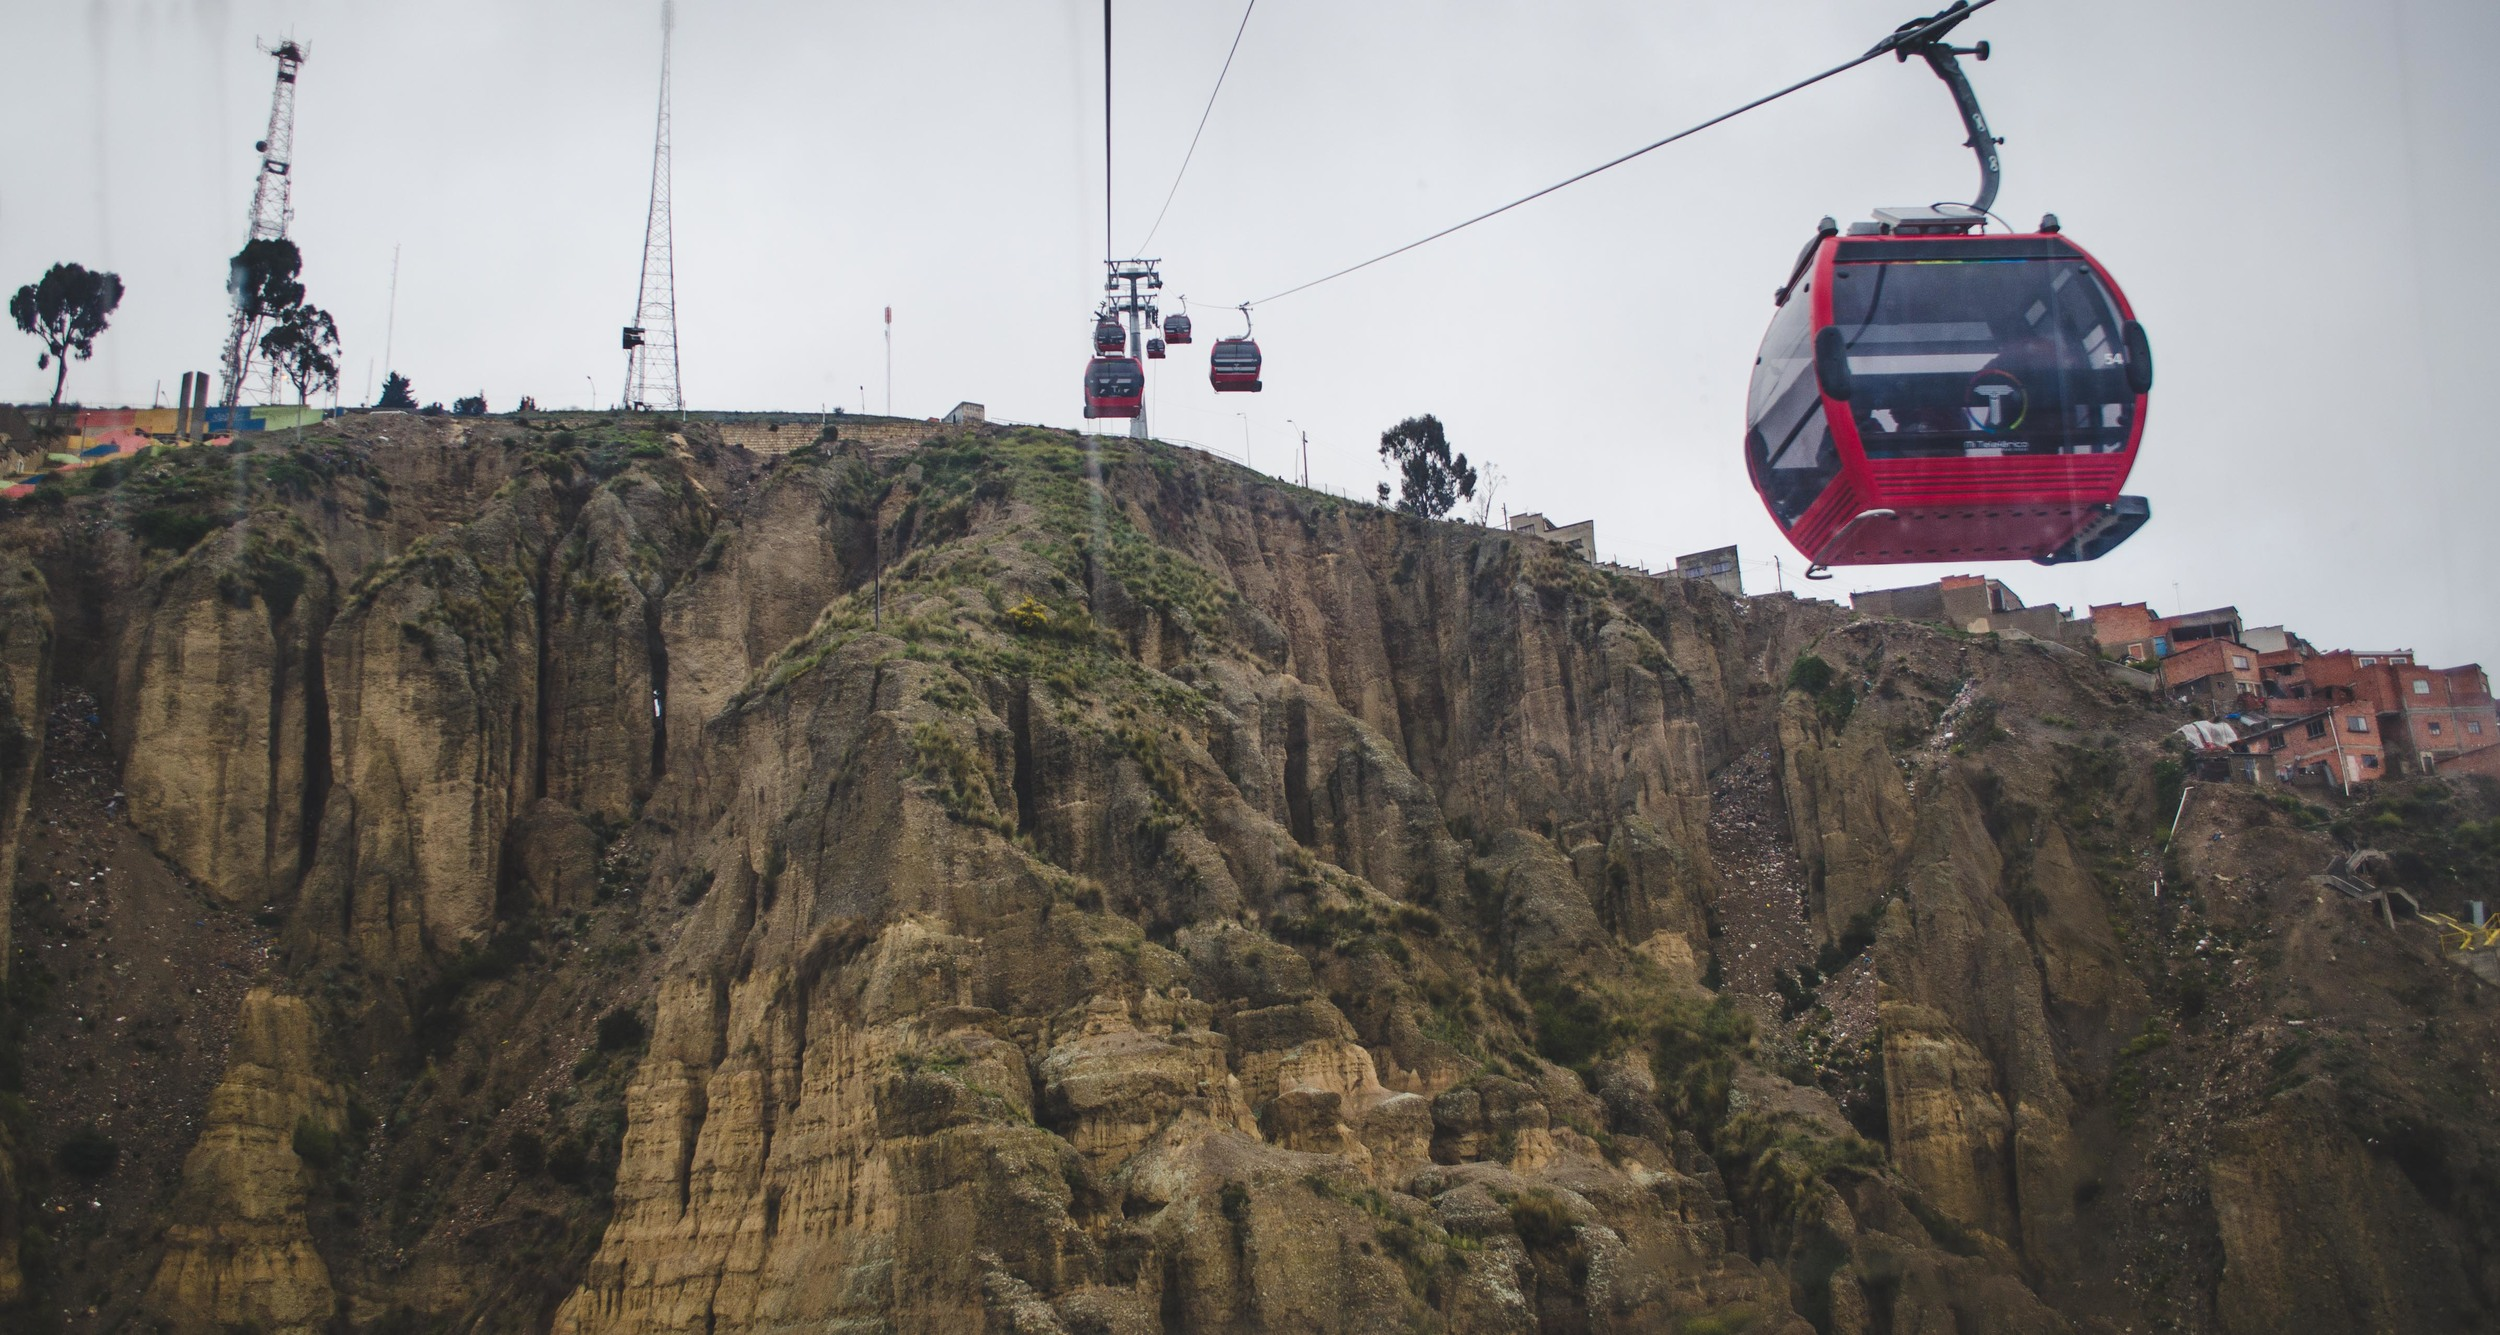 taking the teleférico down from El Alto (top of the cliff) to La Paz (valley)